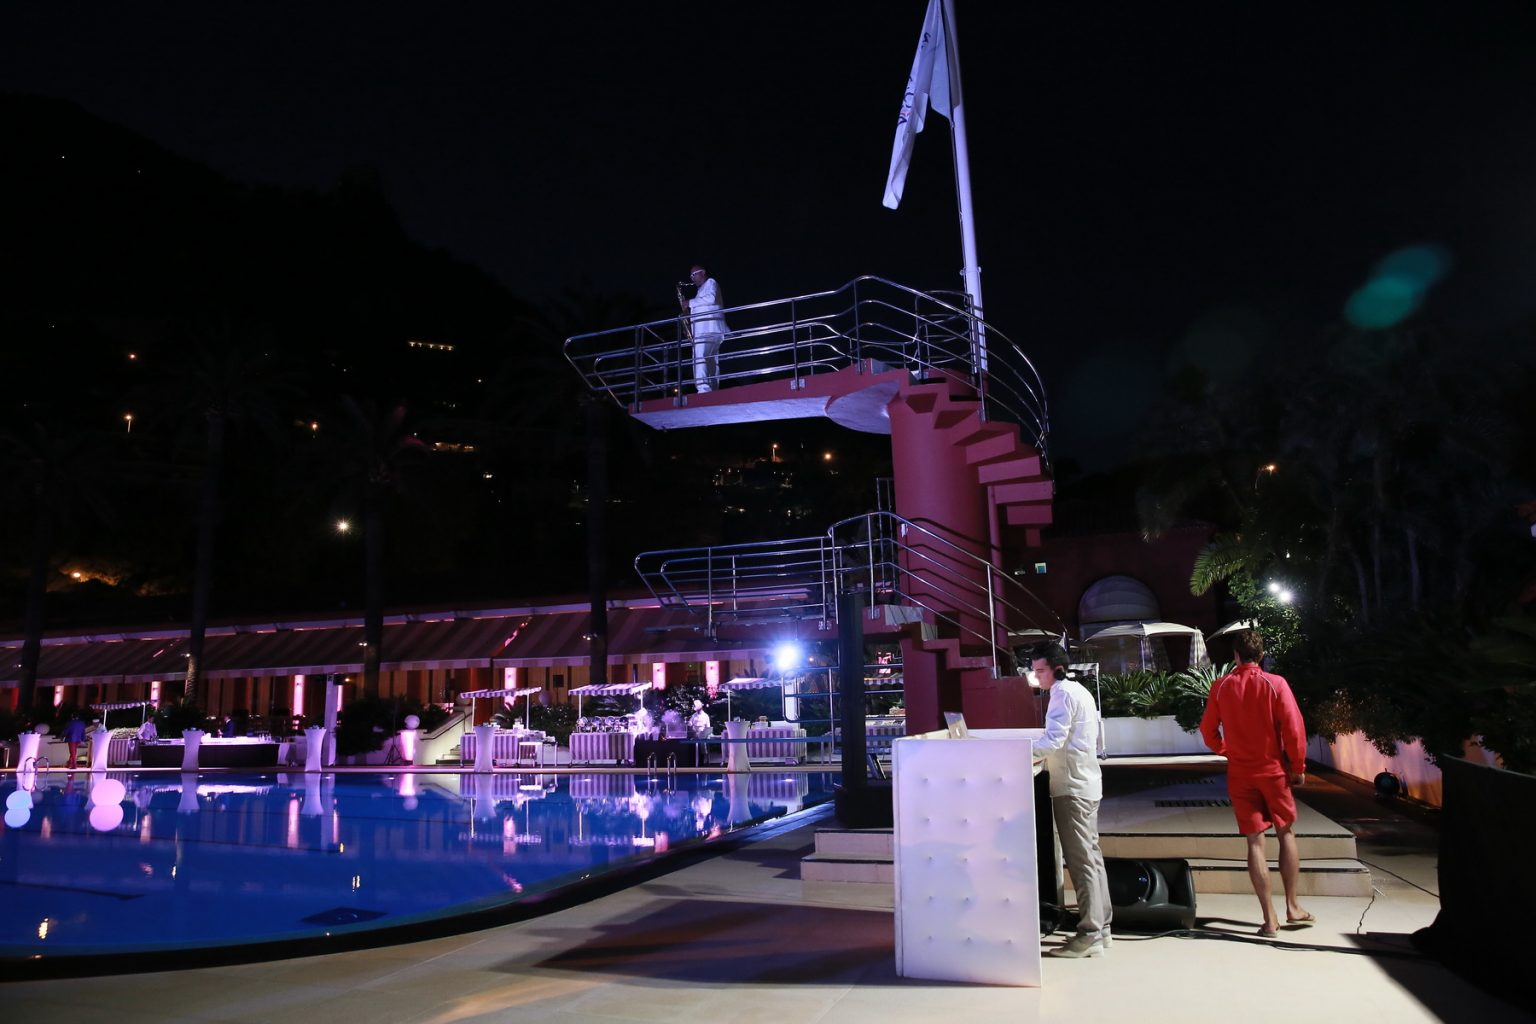 Le Deck Monte Carlo Pool Evening 25 - Le Deck Monte Carlo Pool Evening